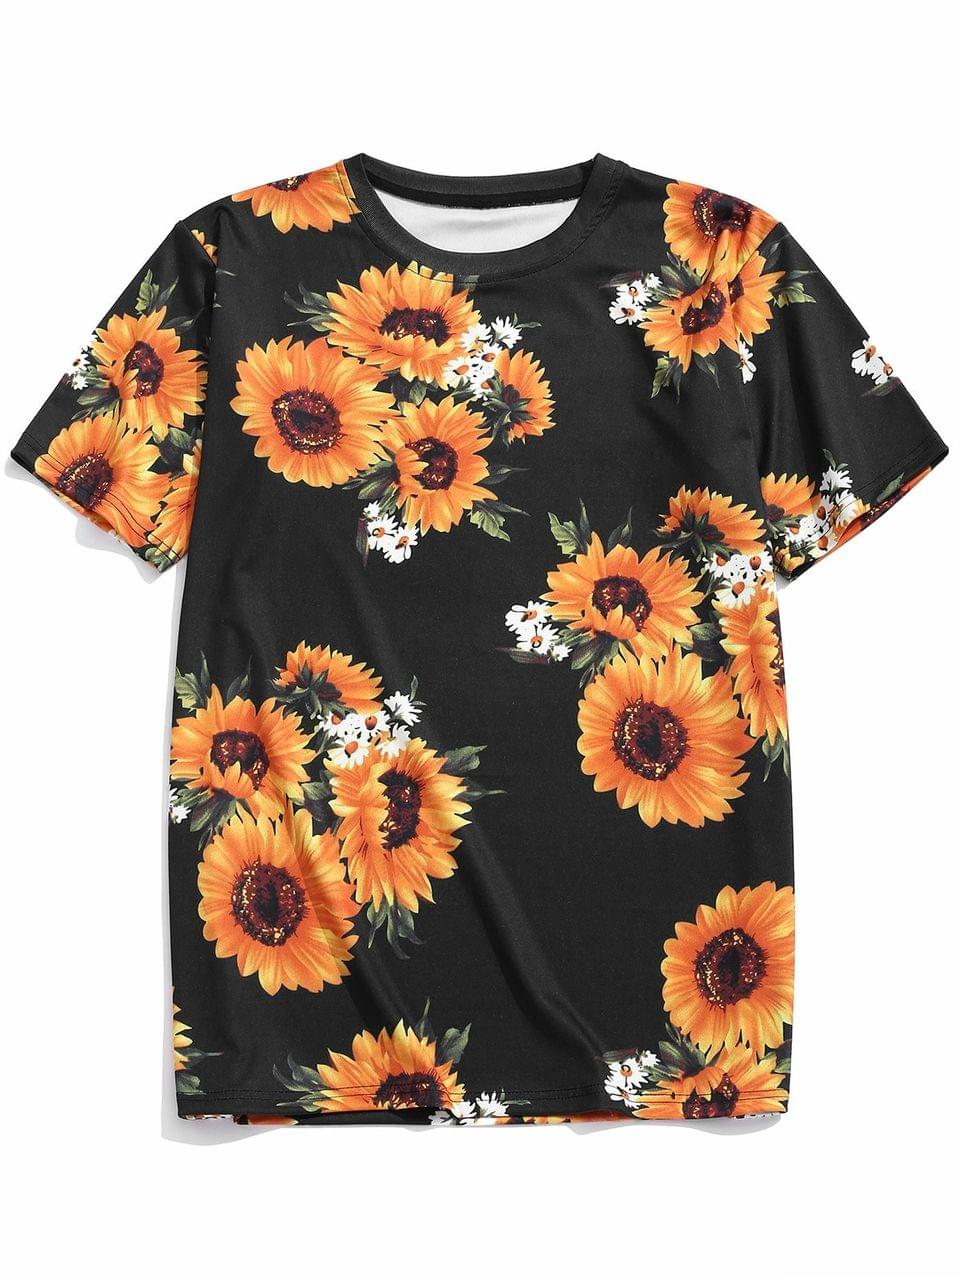 Men's Short Sleeves Sunflower Allover Print Casual T-shirt - Black M